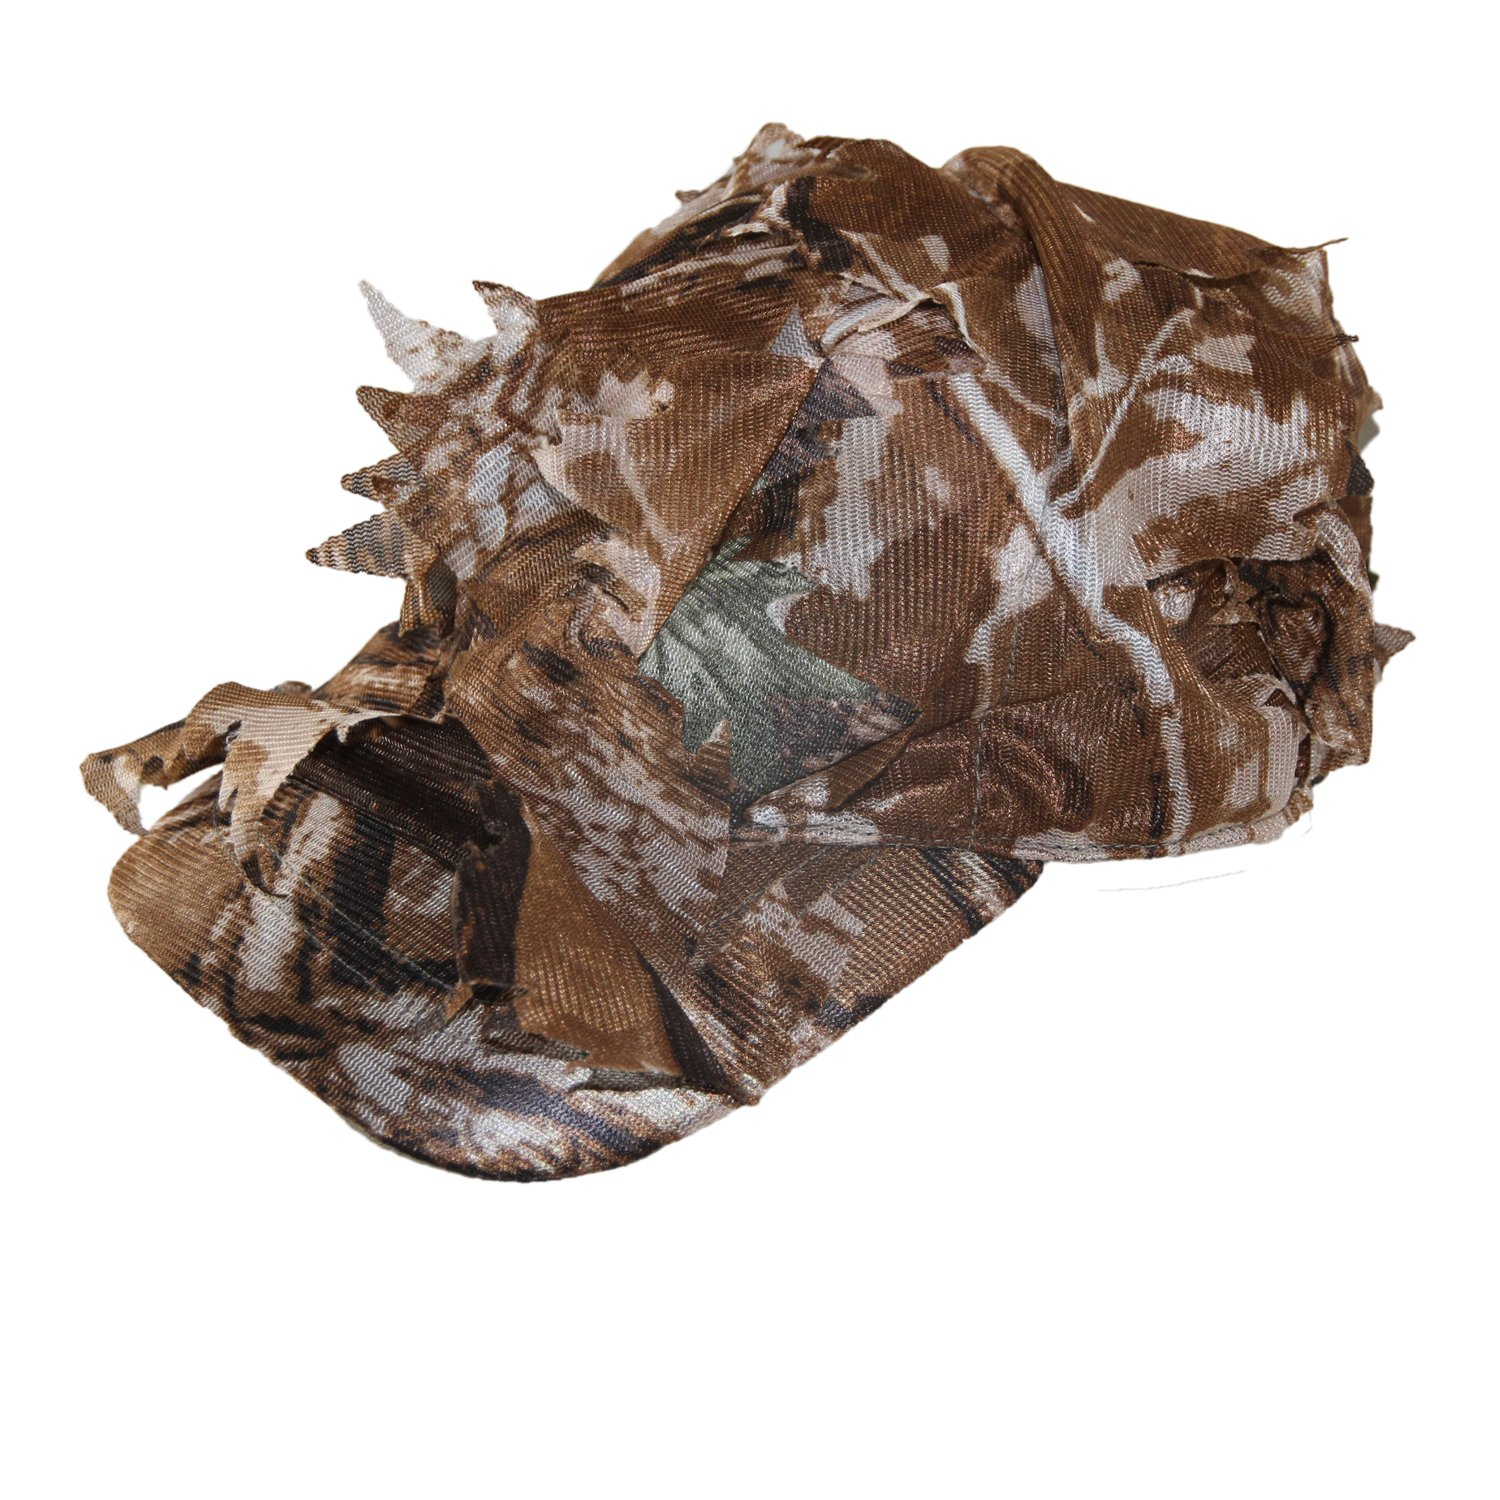 Amazon.com   GUGULUZA 3D Leaves Camo Hats Camouflage Ghillie Cap for  Hunting Reel Tree Leaf Cap (Brown)   Sports   Outdoors 16151b2506b